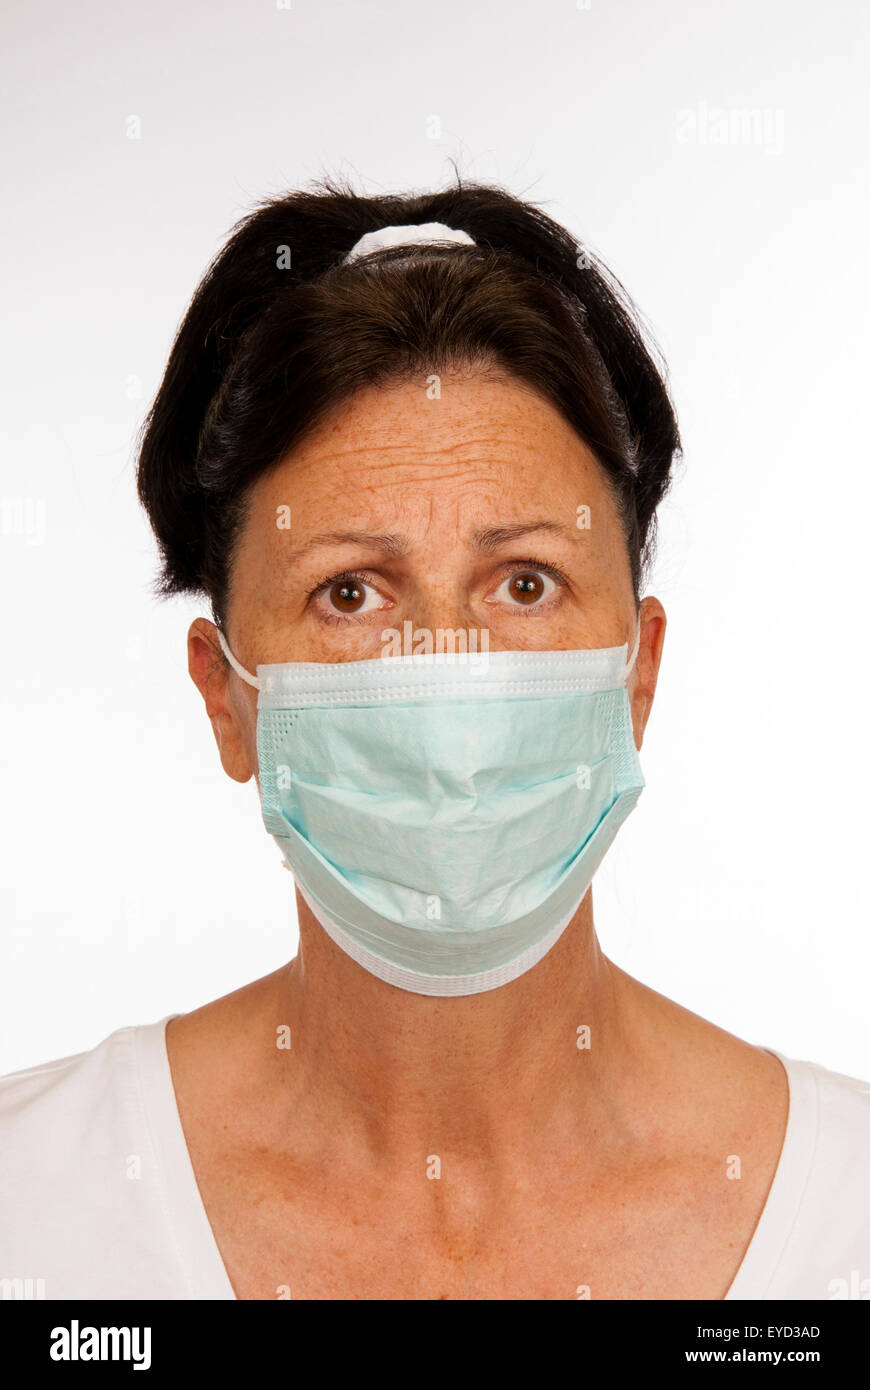 Woman looking worried about catching a contagious disease and is wearing a medical mask. - Stock Image